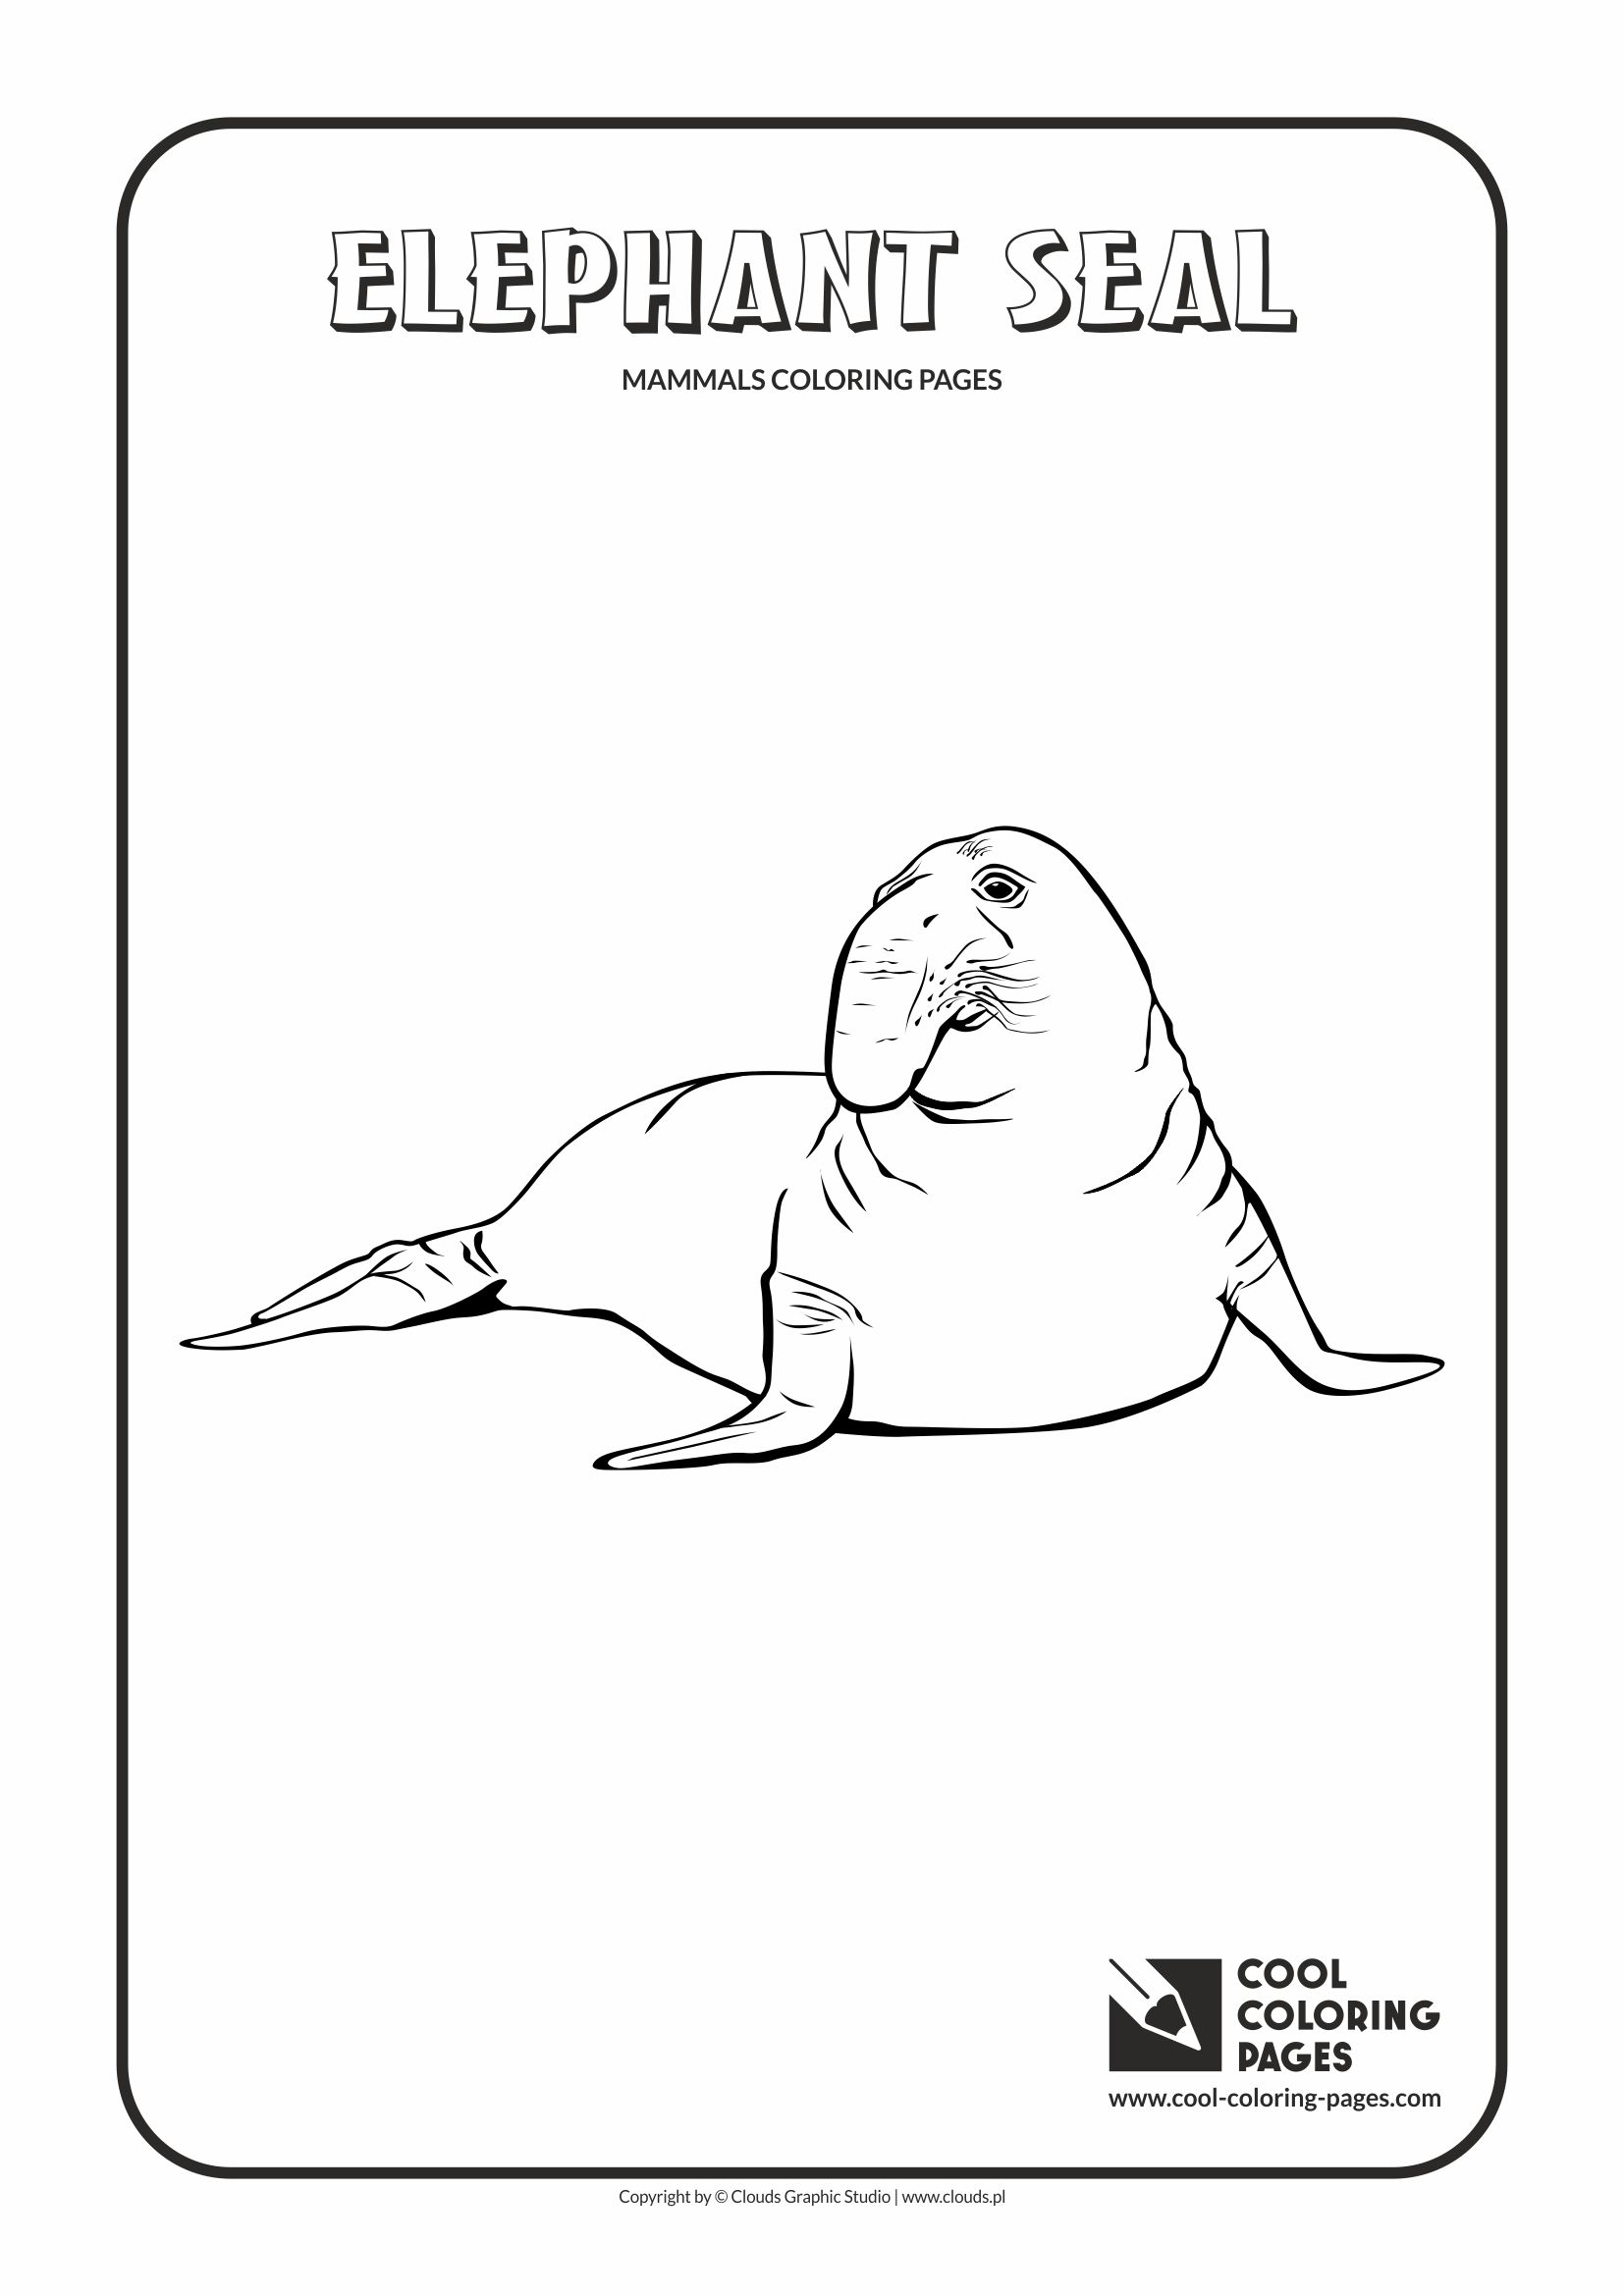 Cool Coloring Pages Elephant seal coloring page - Cool Coloring ...